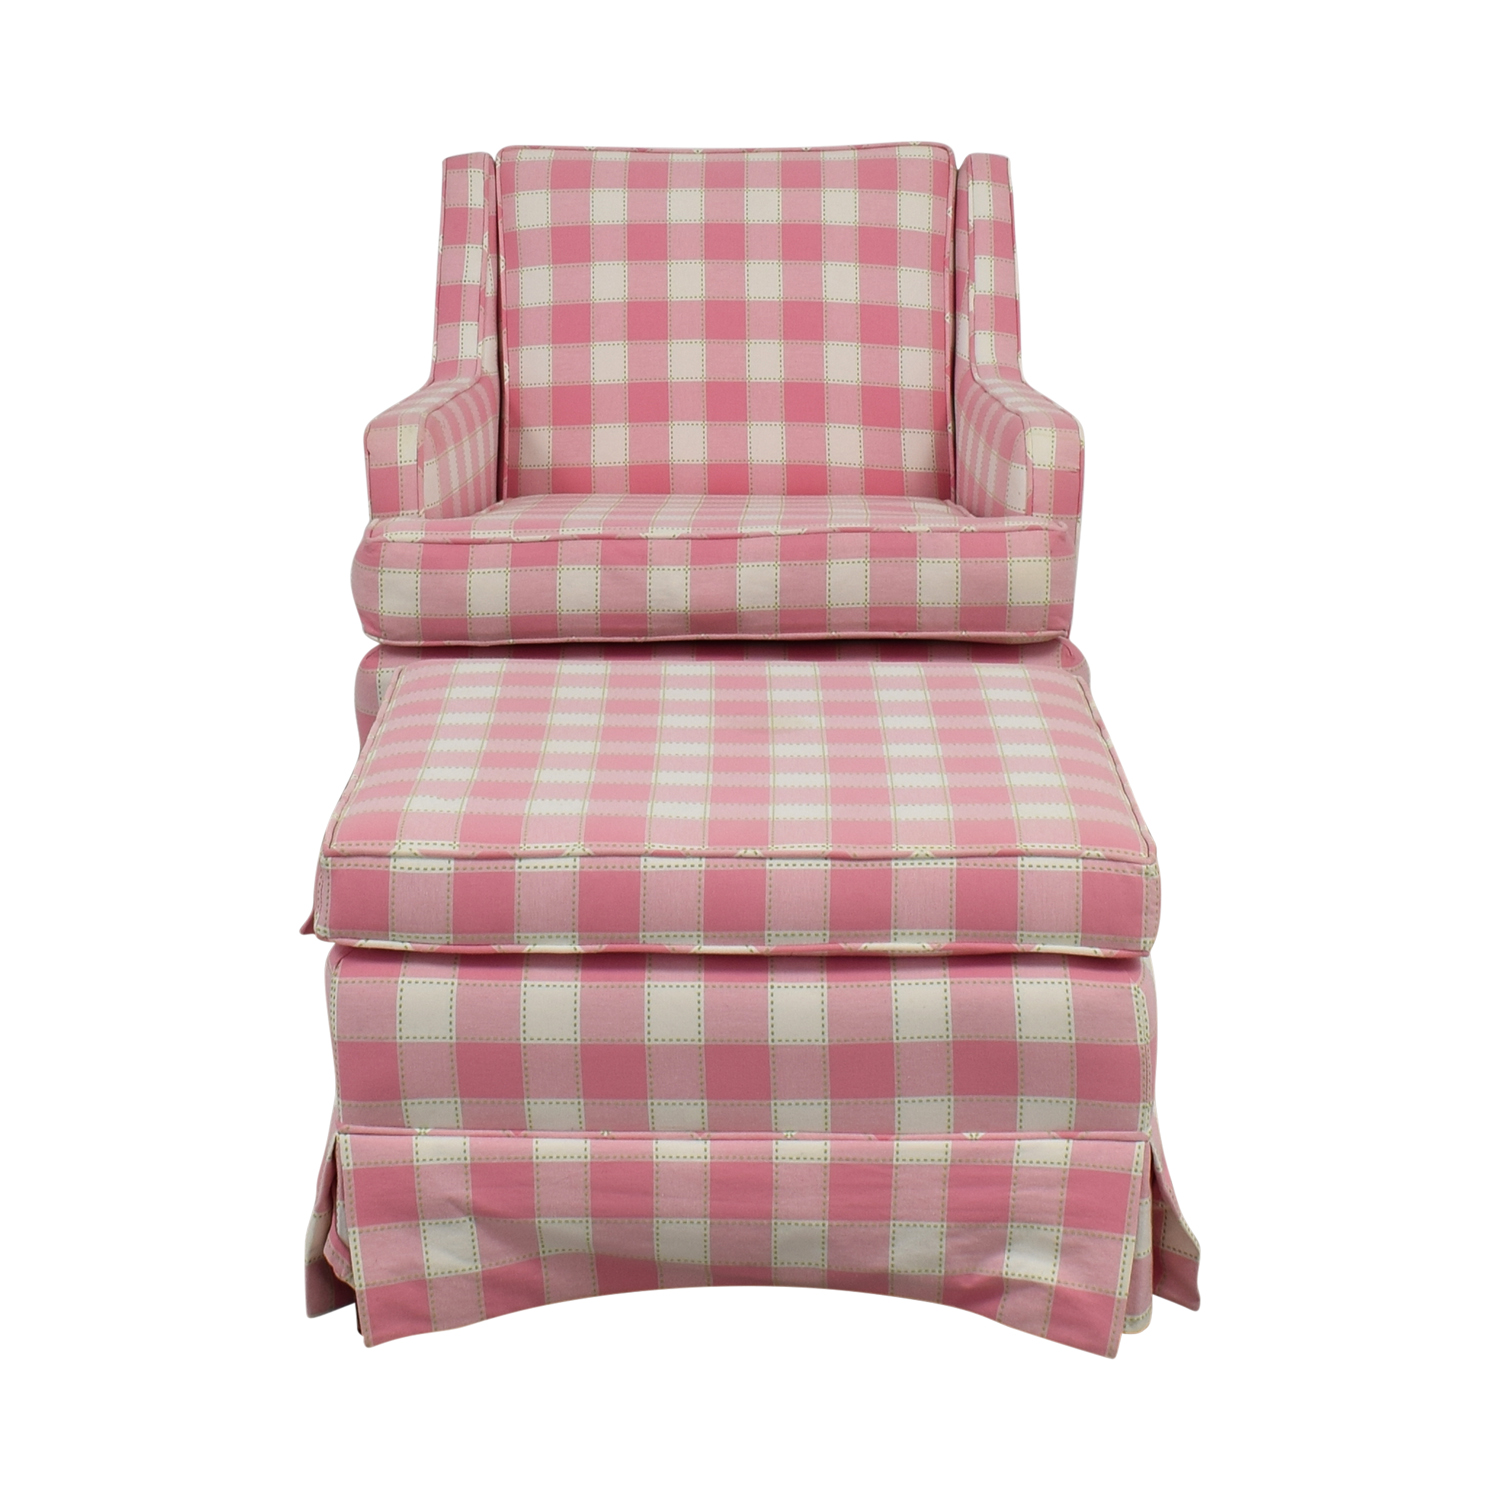 Pink and White Plaid Chair and Ottoman